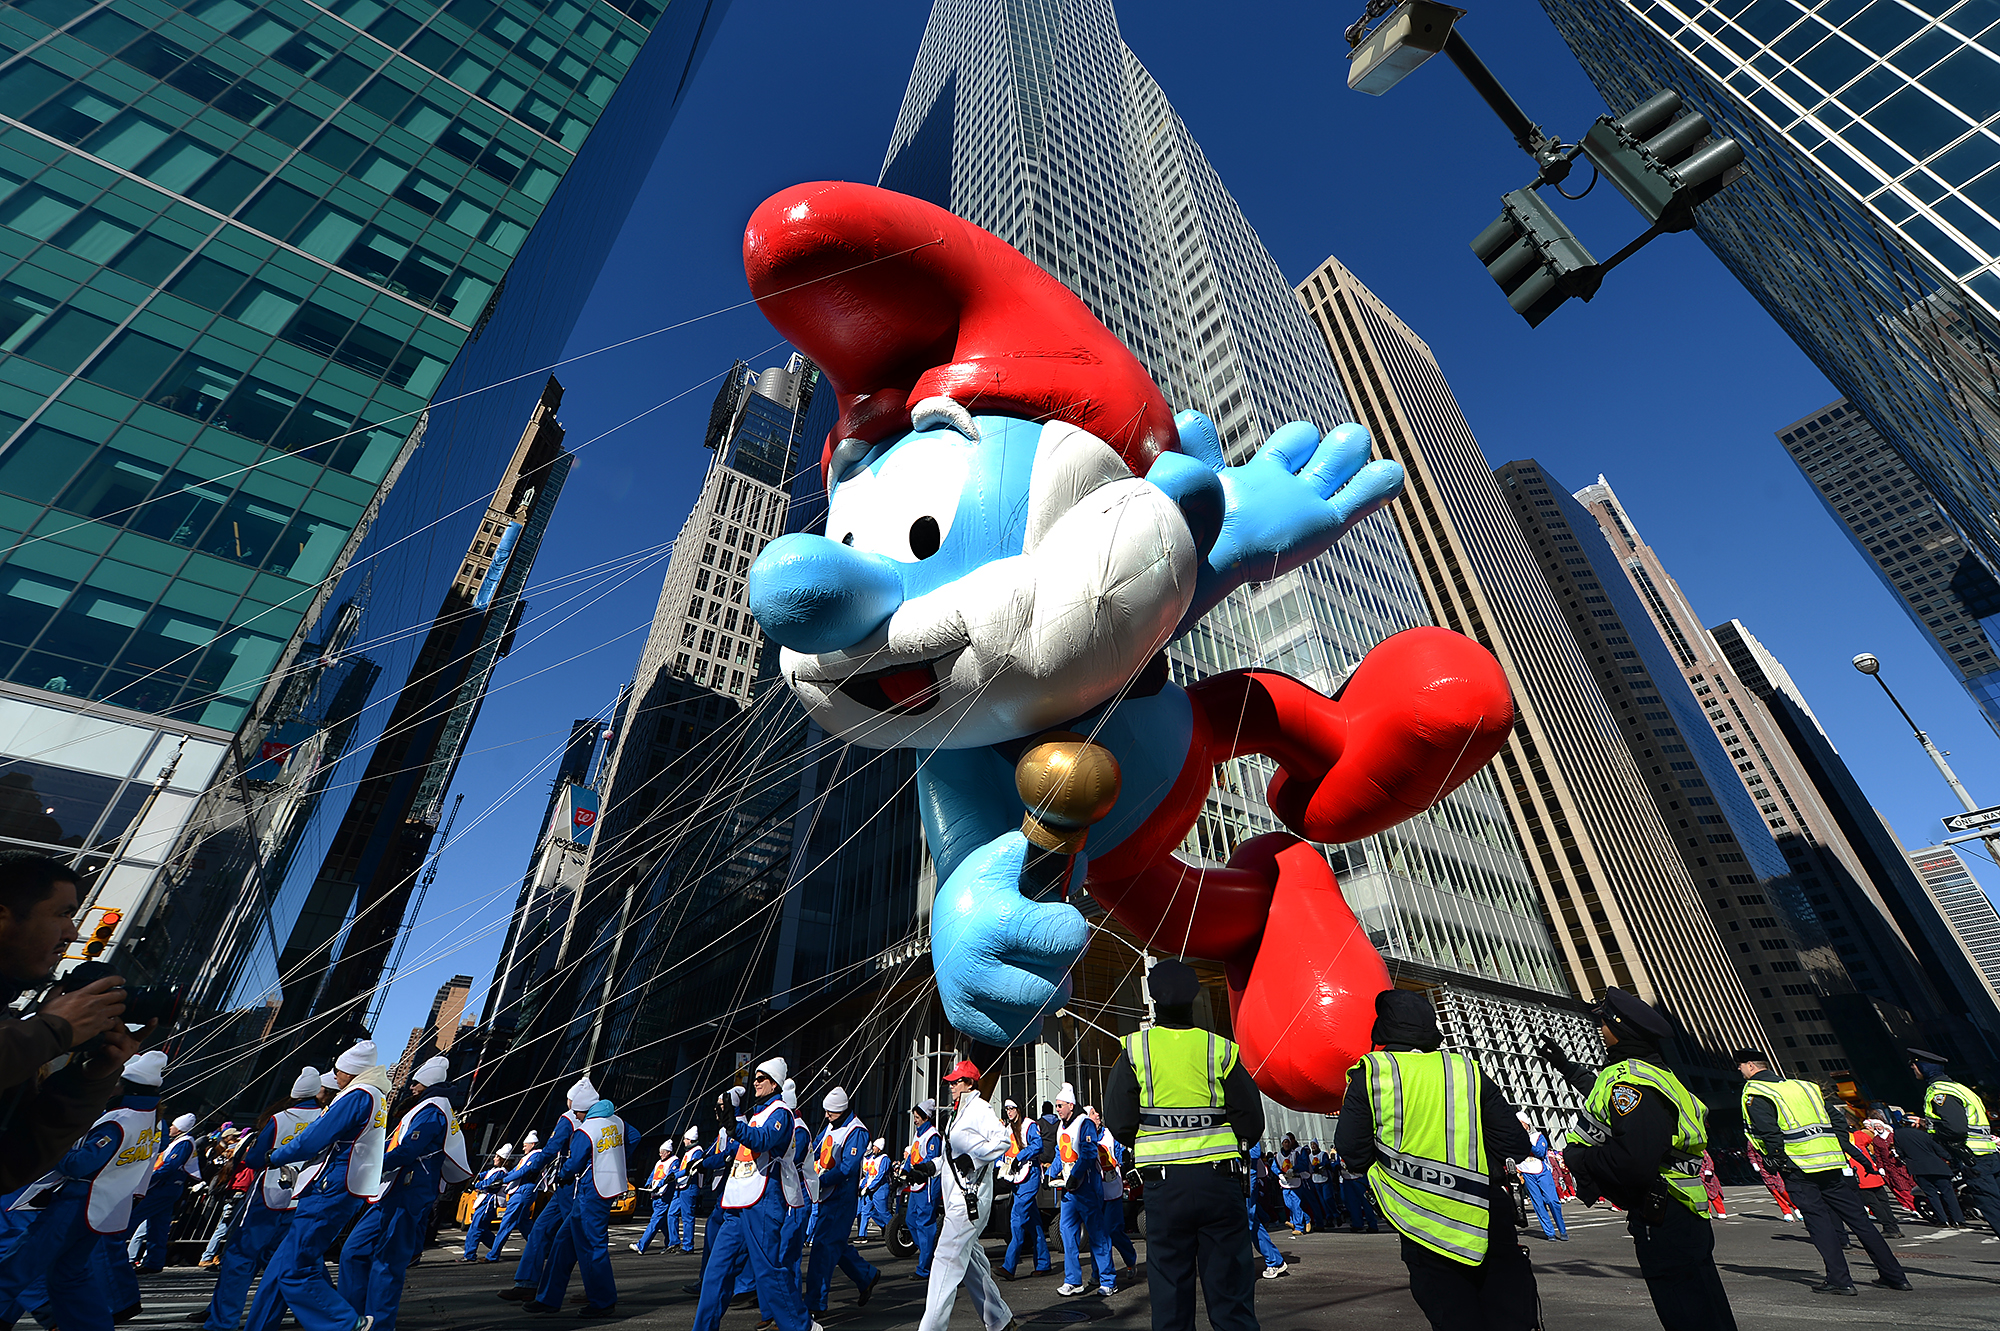 NEW YORK, NY - NOVEMBER 28: The Papa Smurf balloon floats over the streets during the 87th Annual Macy's Thanksgiving Day Parade on November 28, 2013 on November 28, 2013 in New York City. (Photo by Cem Ozdel/Anadolu Agency/Getty Images)